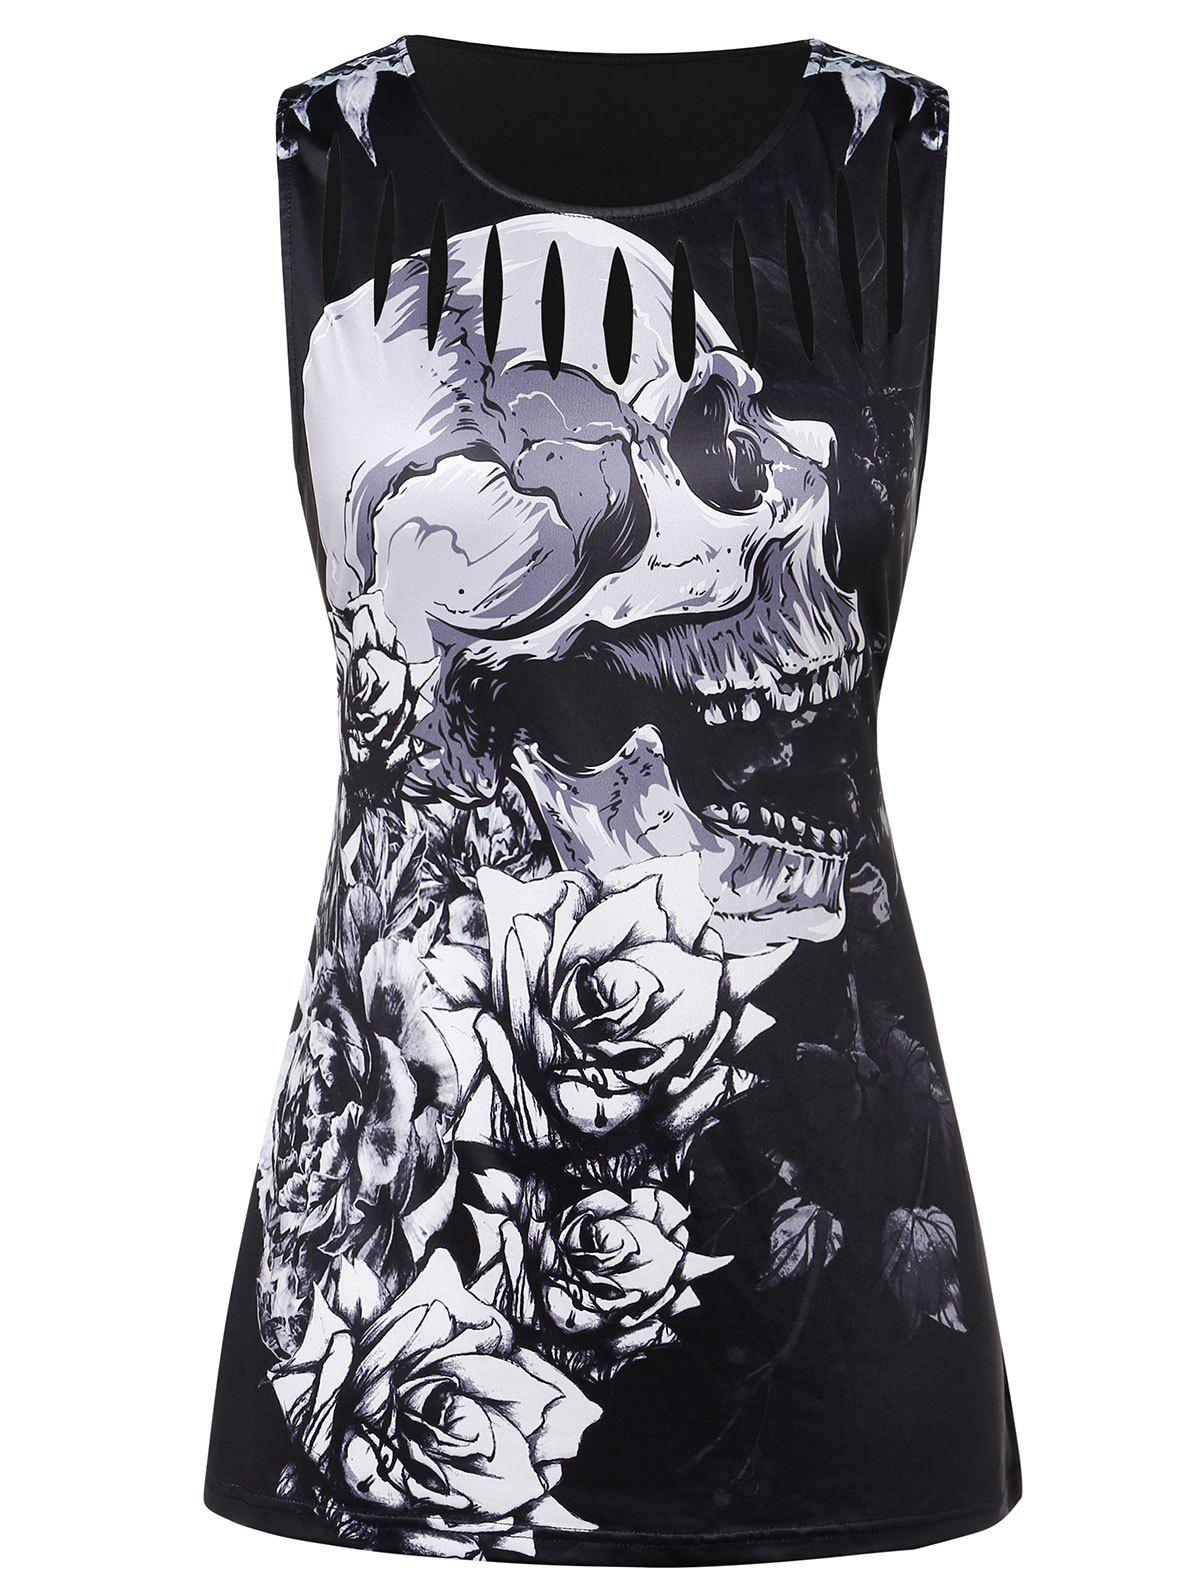 Chic Plus Size Ripped Skull Print Tank Top